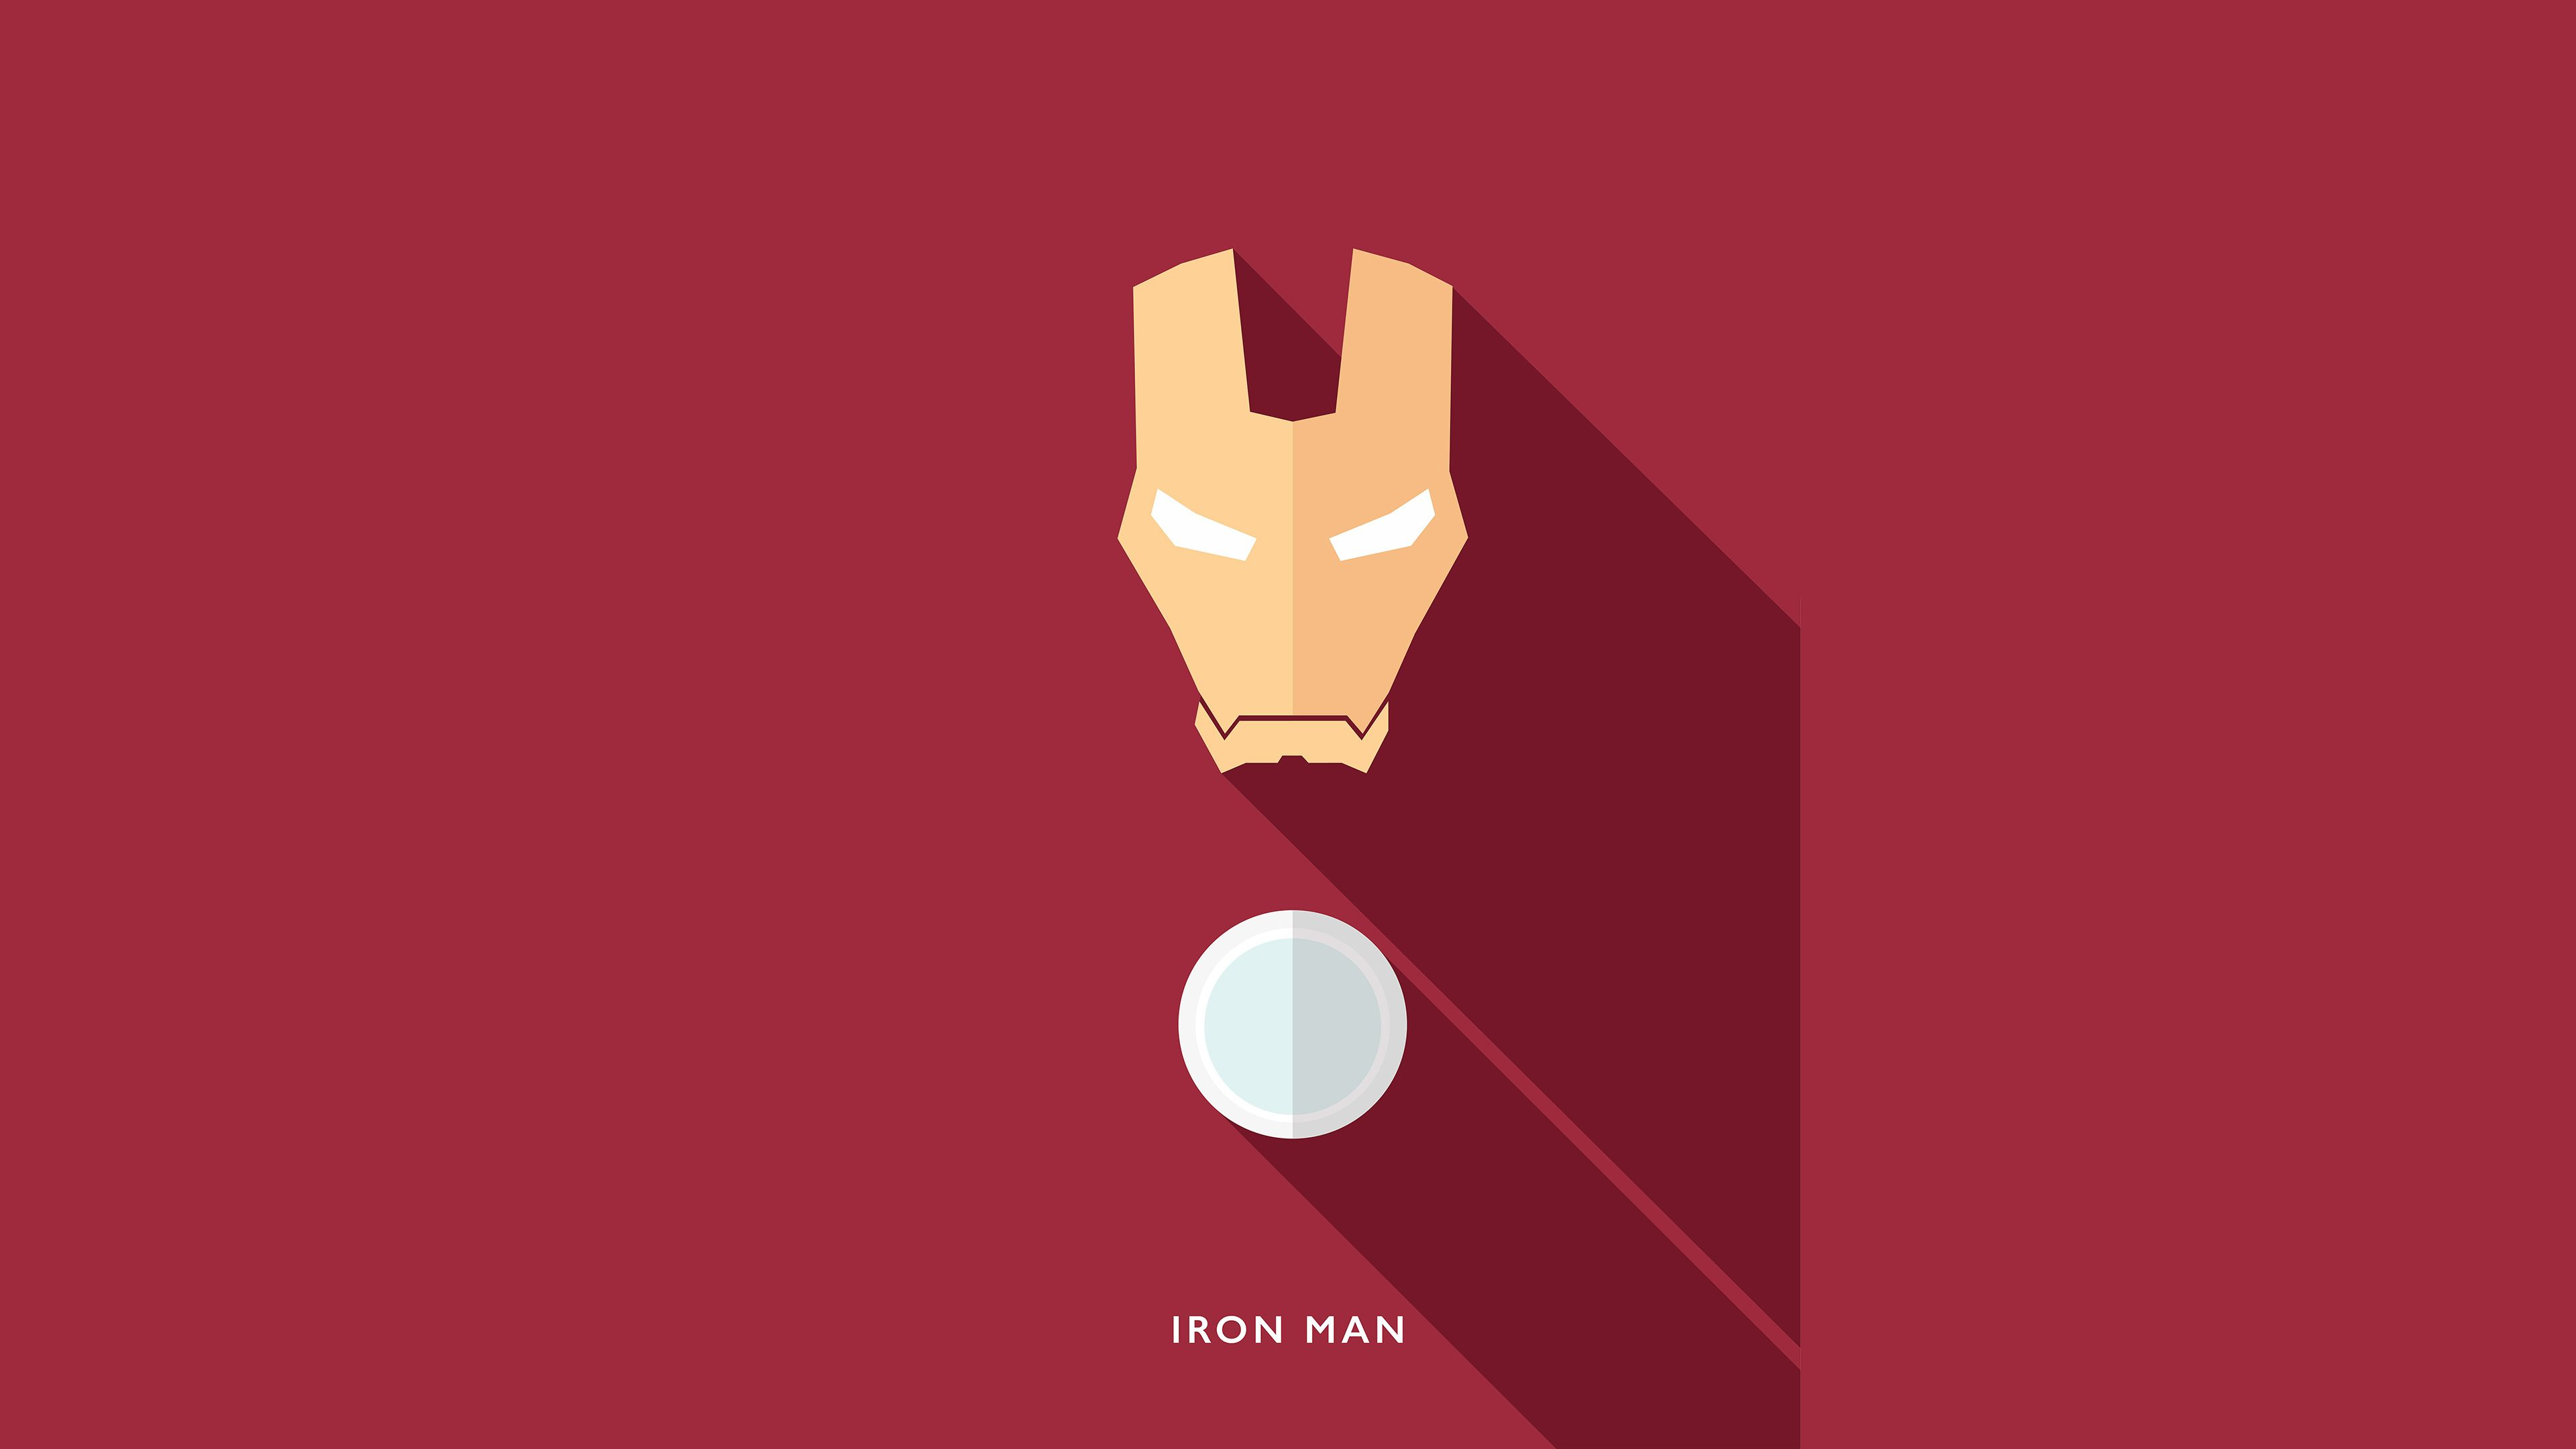 Iron Man Minimalists 4k Superheroes Wallpapers Minimalist Wallpapers Minimalism Wallpapers Iron Man Wa Iron Man Wallpaper Man Wallpaper Minimalist Wallpaper